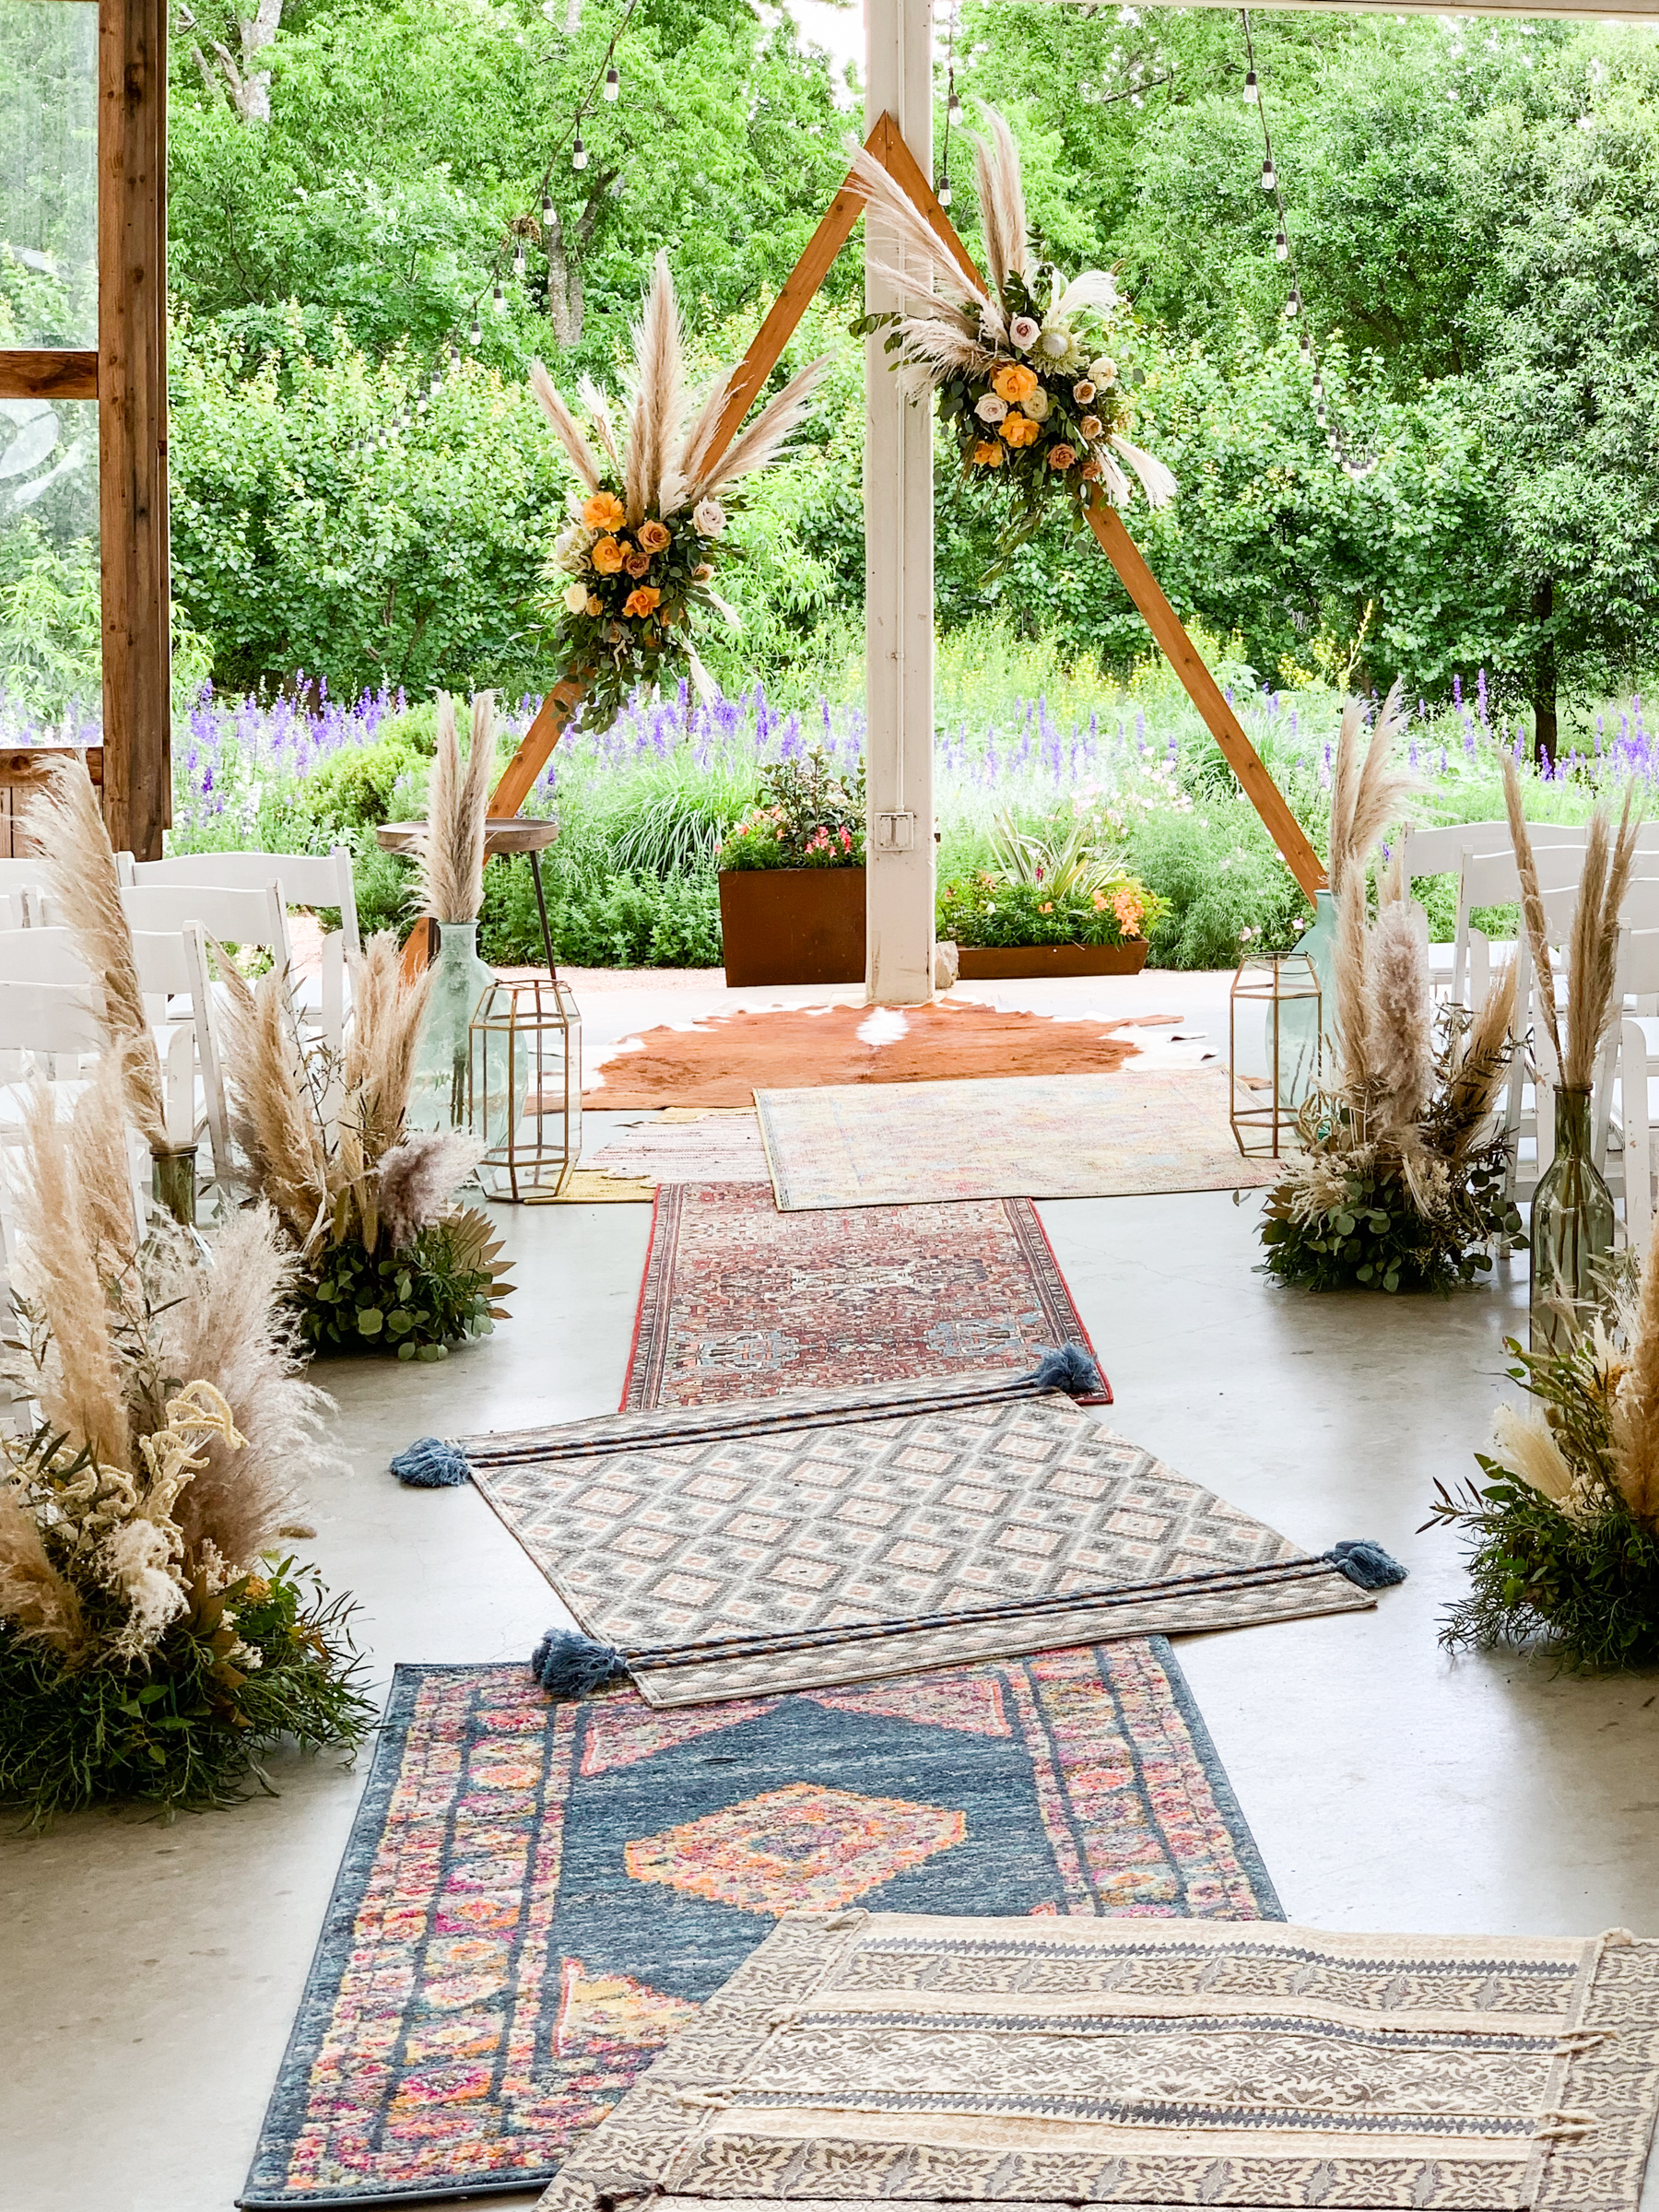 the wedding ceremony aisle was adorned with rugs and pampas grass arrangements